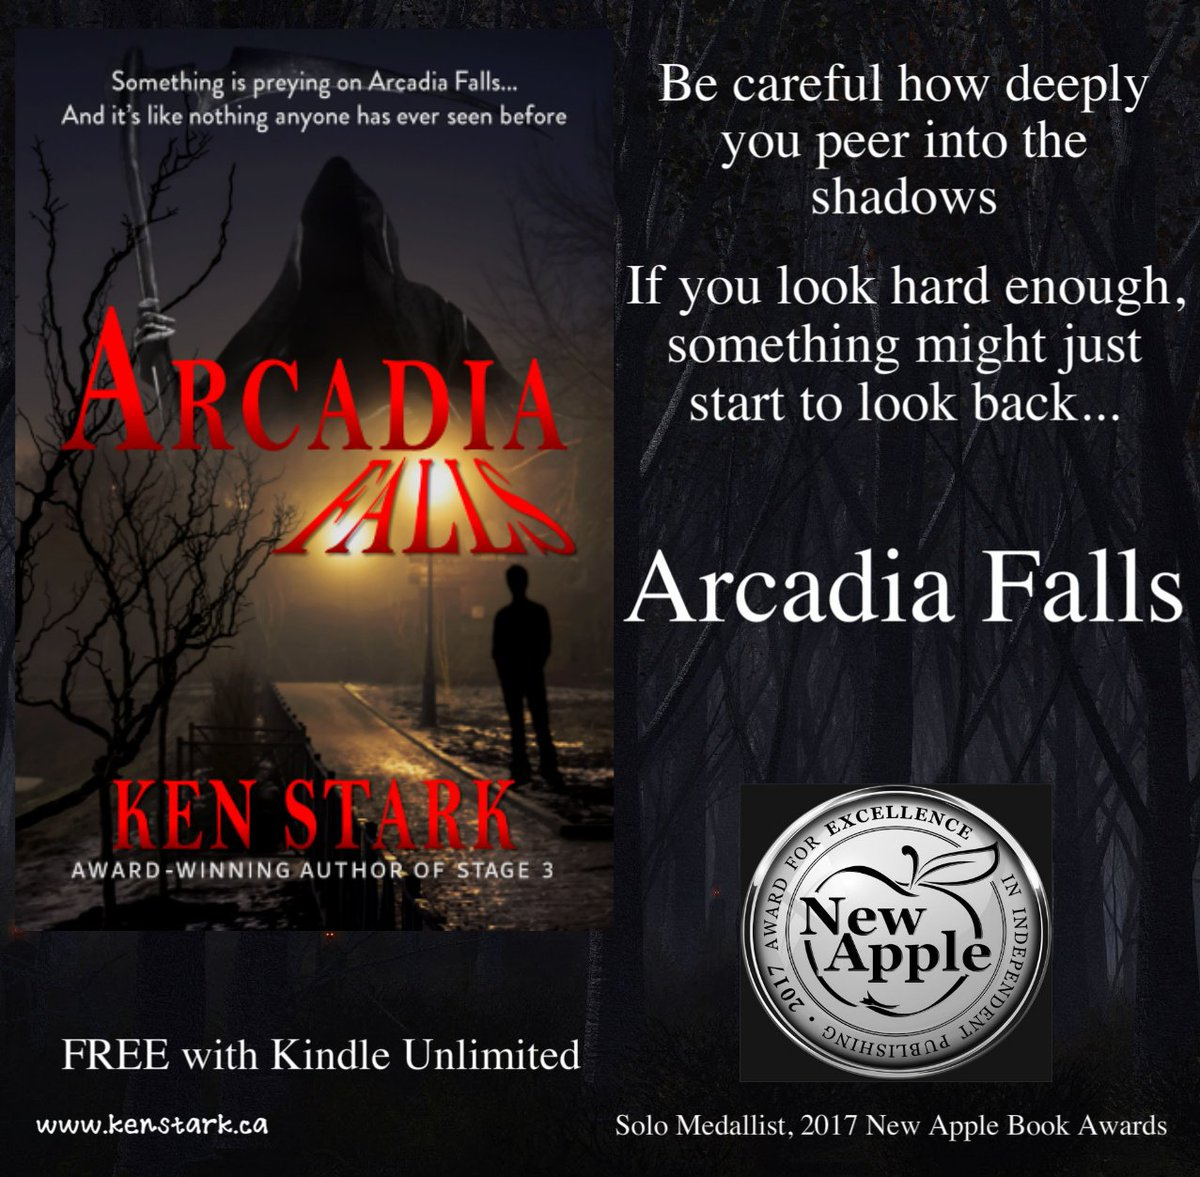 &quot;No one is coming to help. We&#39;re on our own...&quot;   http:// amazon.com/dp/B077VVQVL4  &nbsp;   #horror #mystery #monster #paranormal #thriller #IARTG @NewAppleAwards  #ArcadiaFalls #FREE on #KindleUnlimited<br>http://pic.twitter.com/zJsNfalXUA